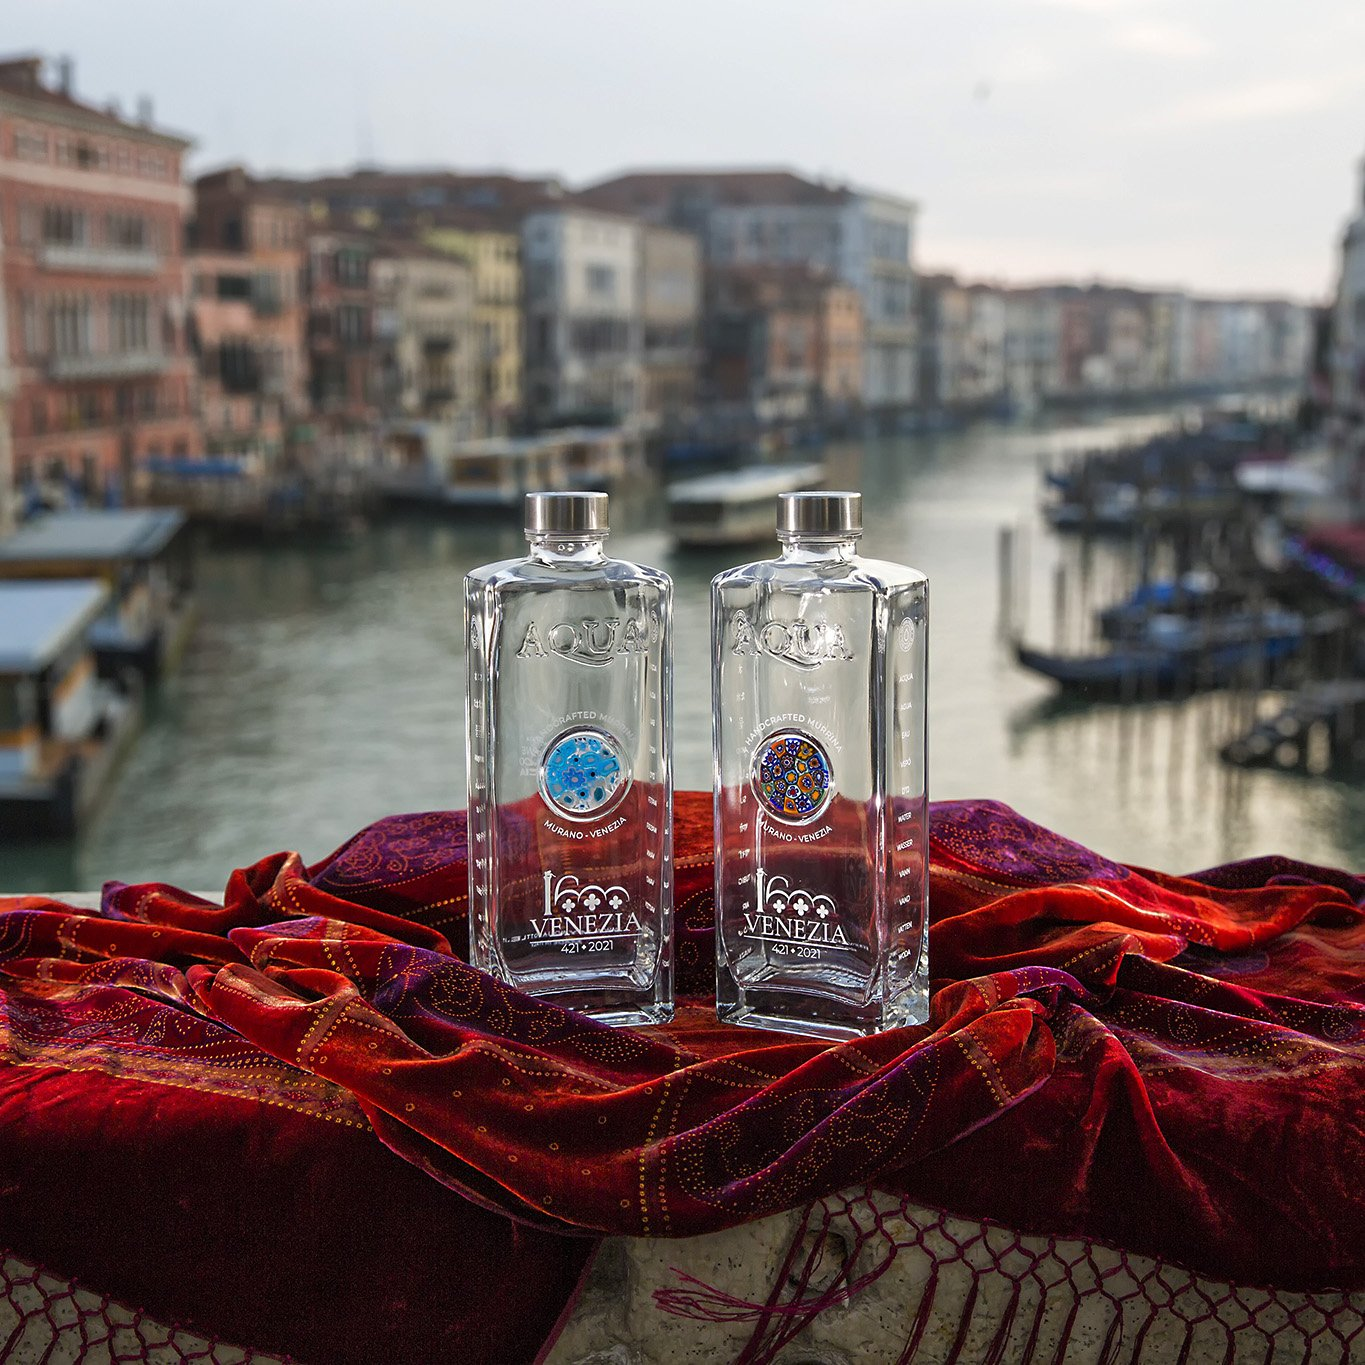 My Aqua Bottle Water and Venice